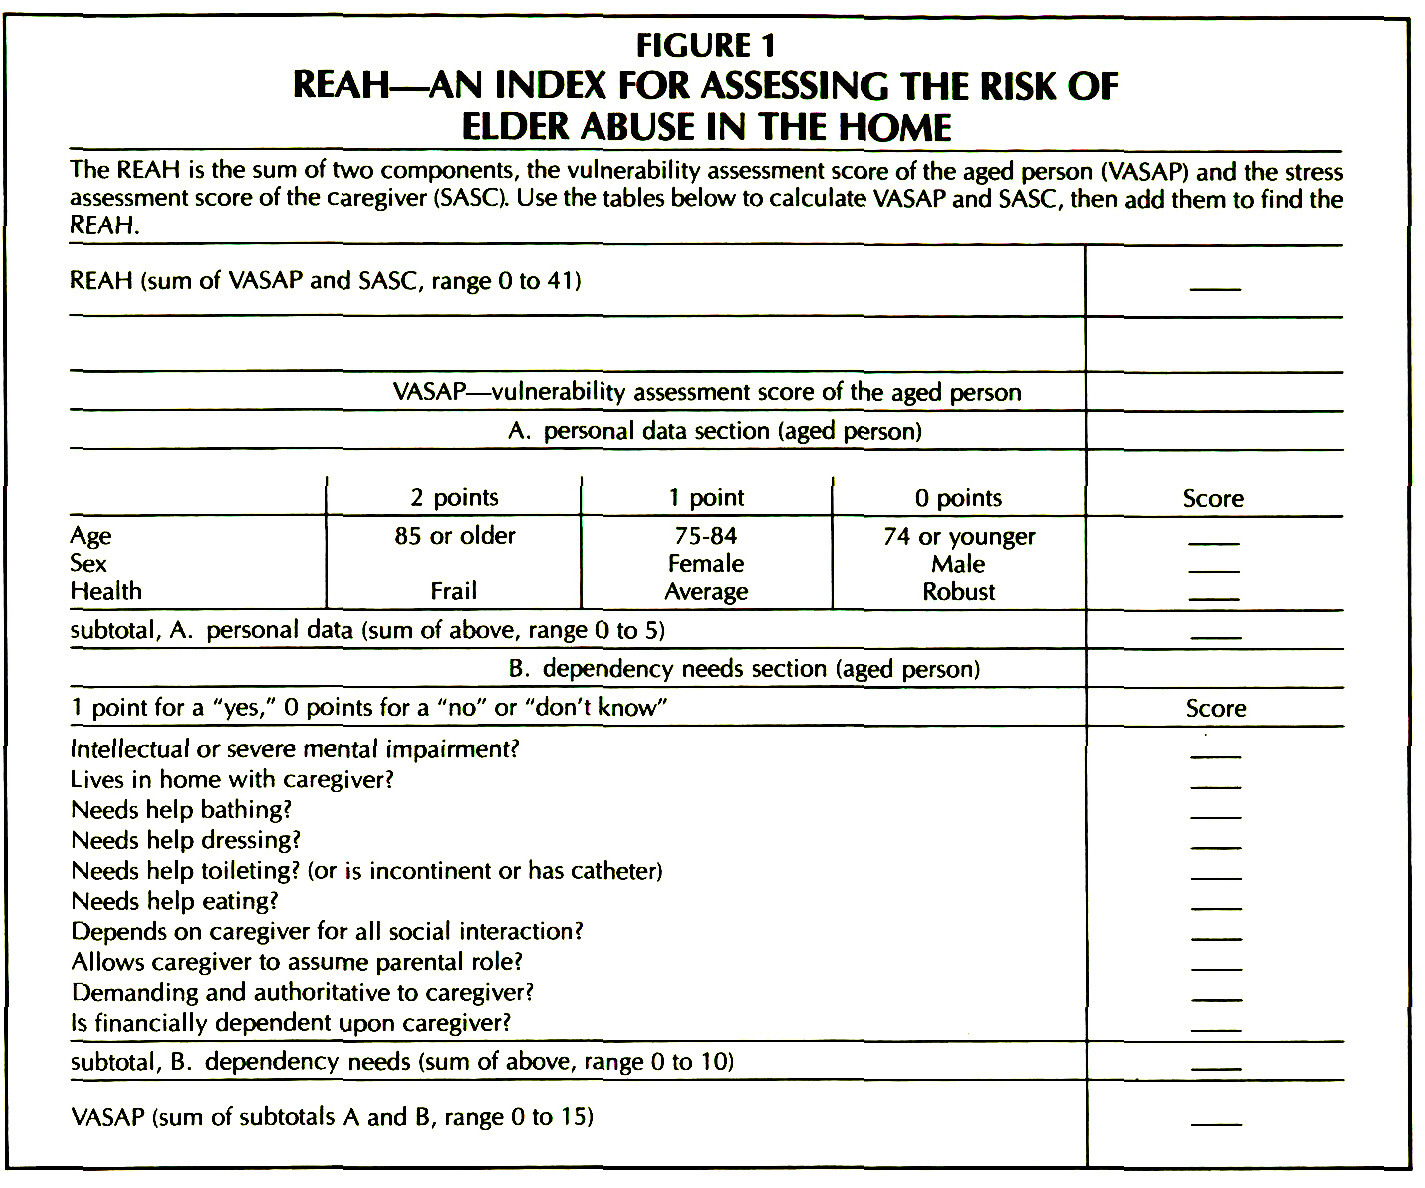 FIGURE 1REAH-AN INDEX FOR ASSESSING THE RISK OF ELDER ABUSE IN THE HOME